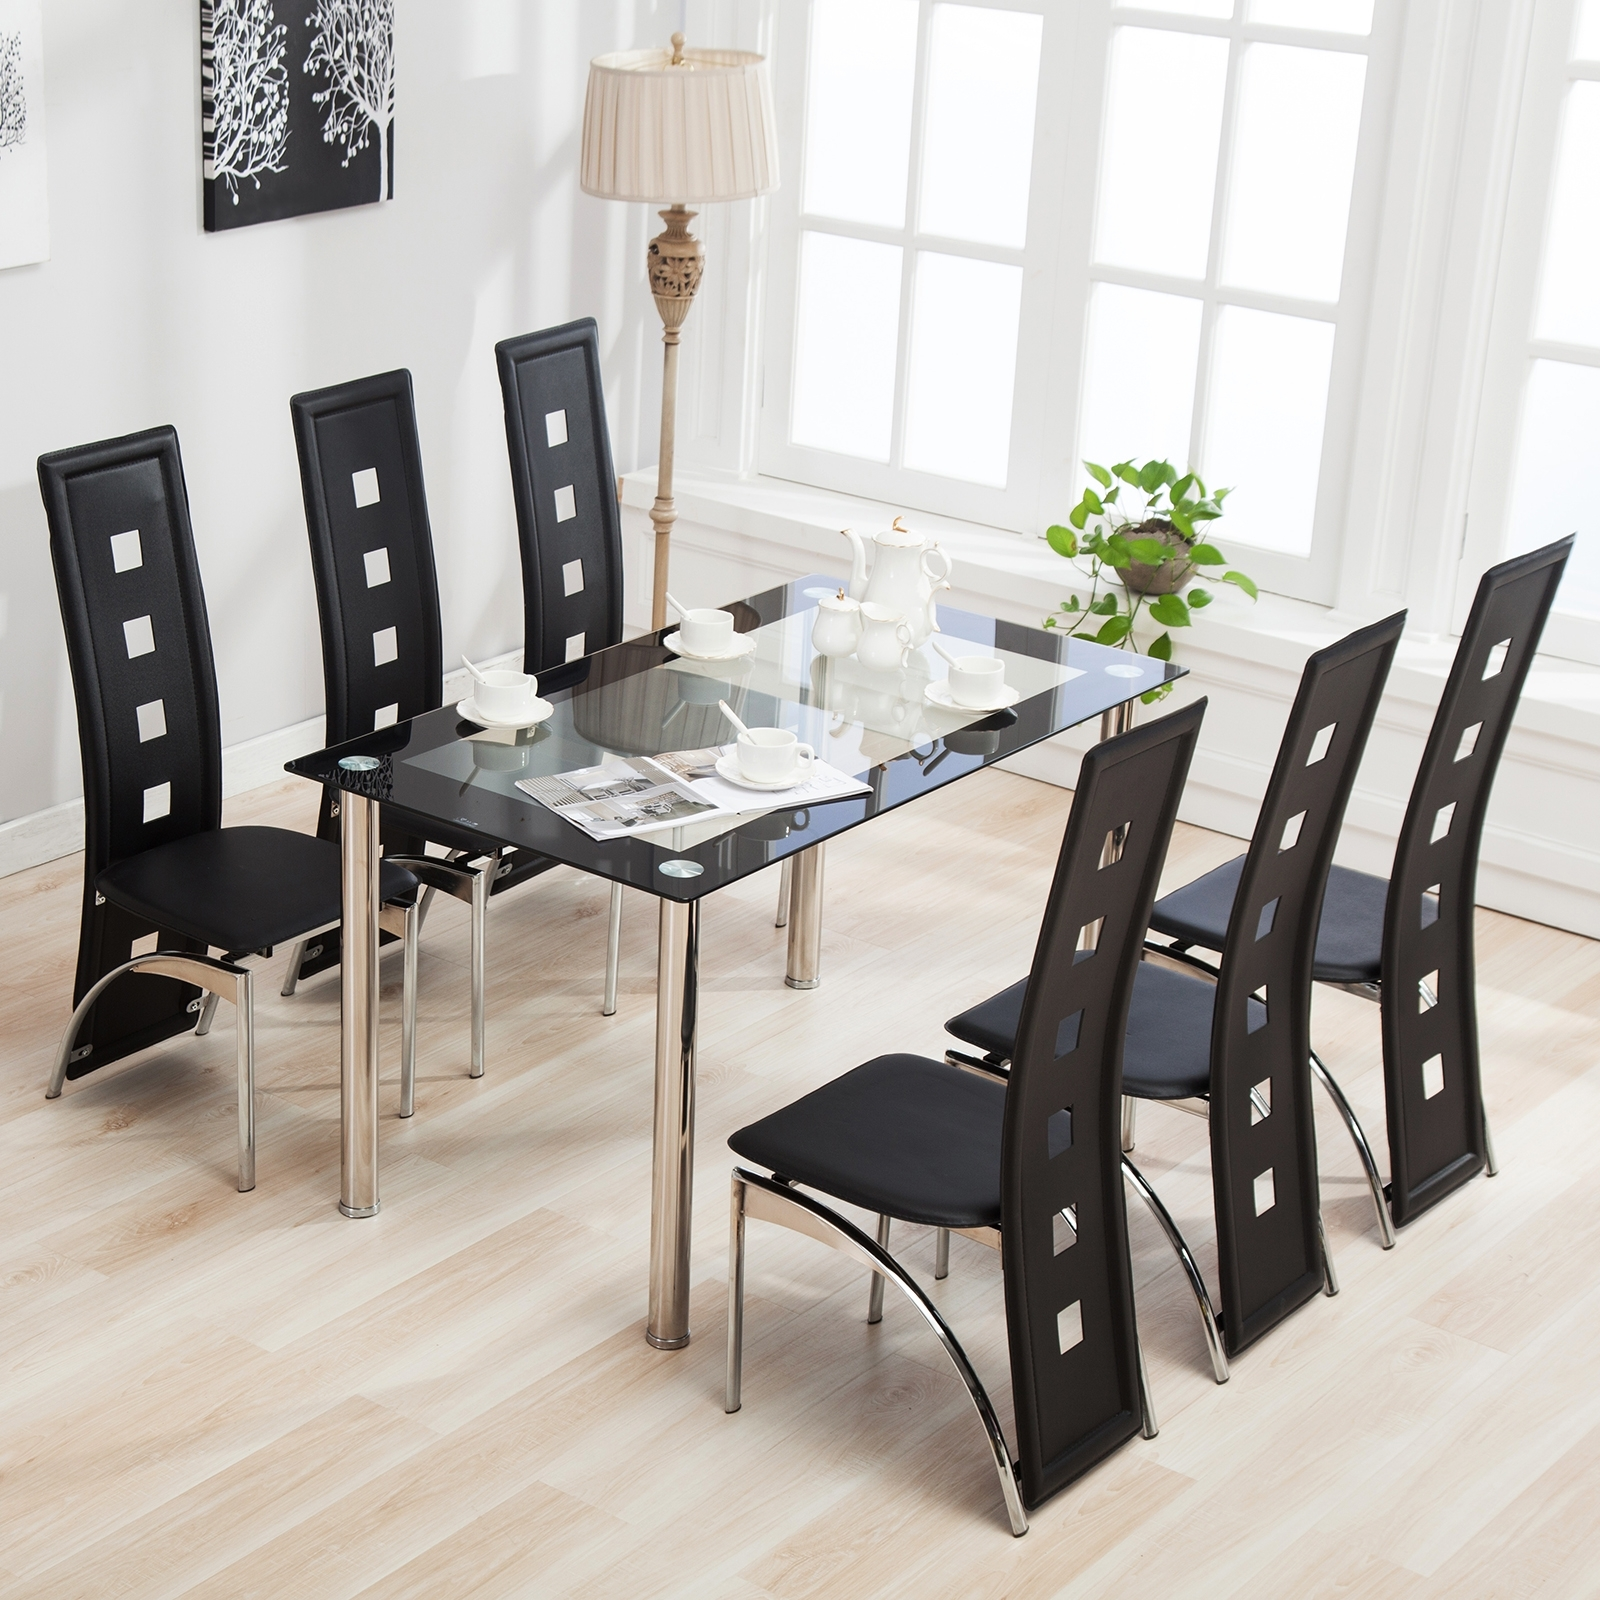 Mecor 7Pcs Dining Table Set 6 Chairs Glass Metal Kitchen Room Within 2018 6 Chairs And Dining Tables (View 19 of 25)